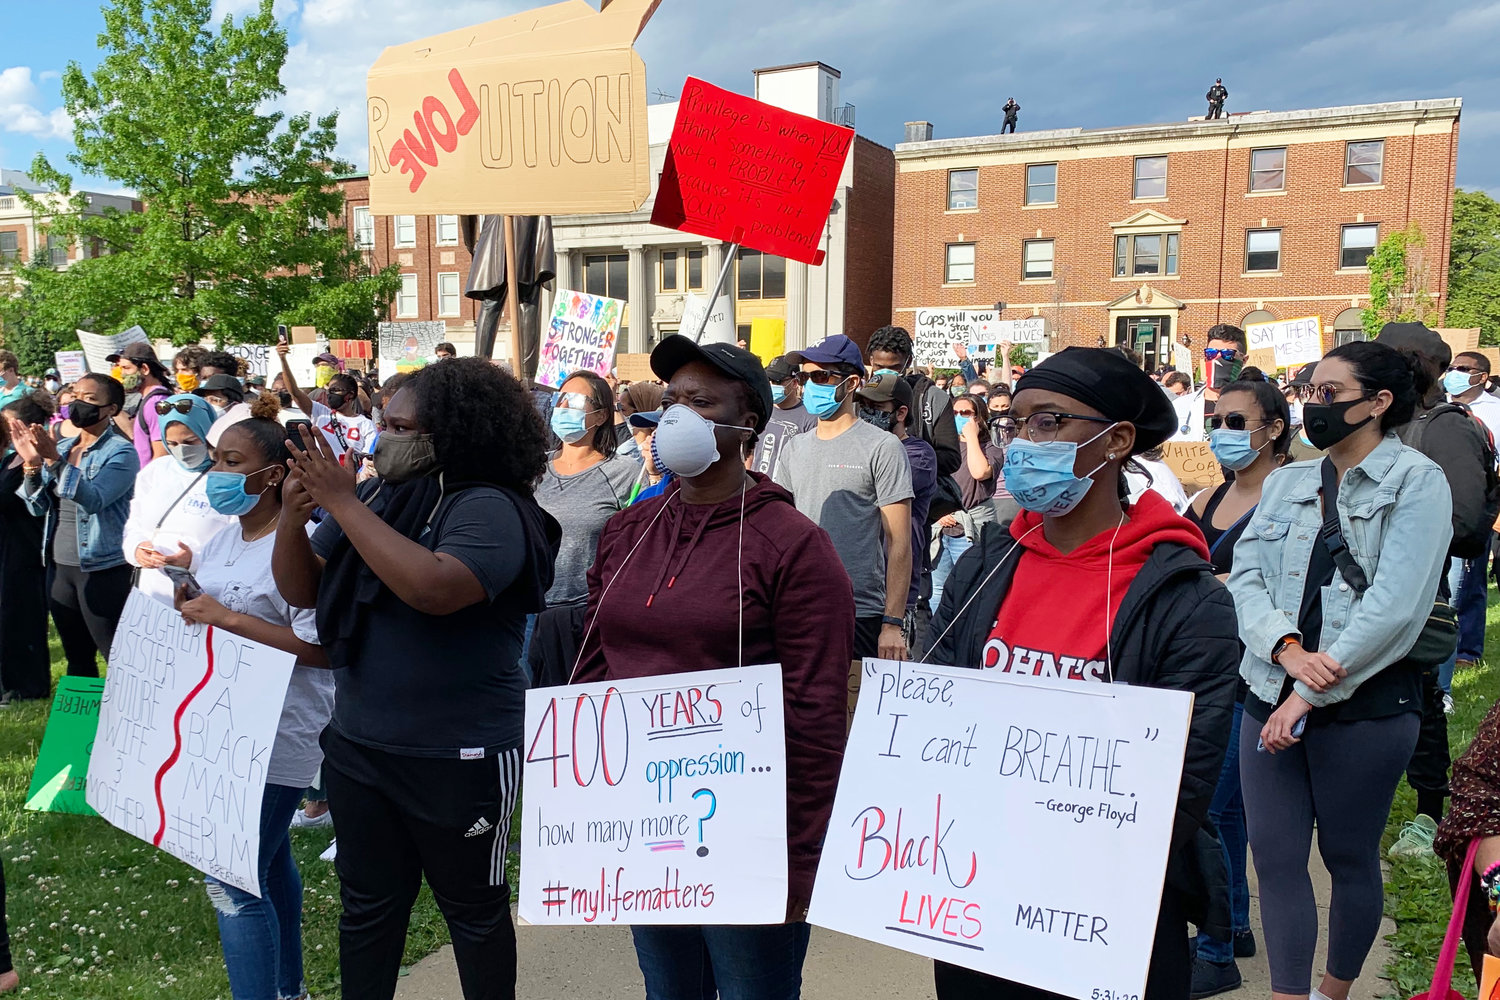 Dozens of people came to the Nassau County Legislature and Executive Building on Monday evening to protest the killing of George Floyd by a Minneapolis police officer on Memorial Day.